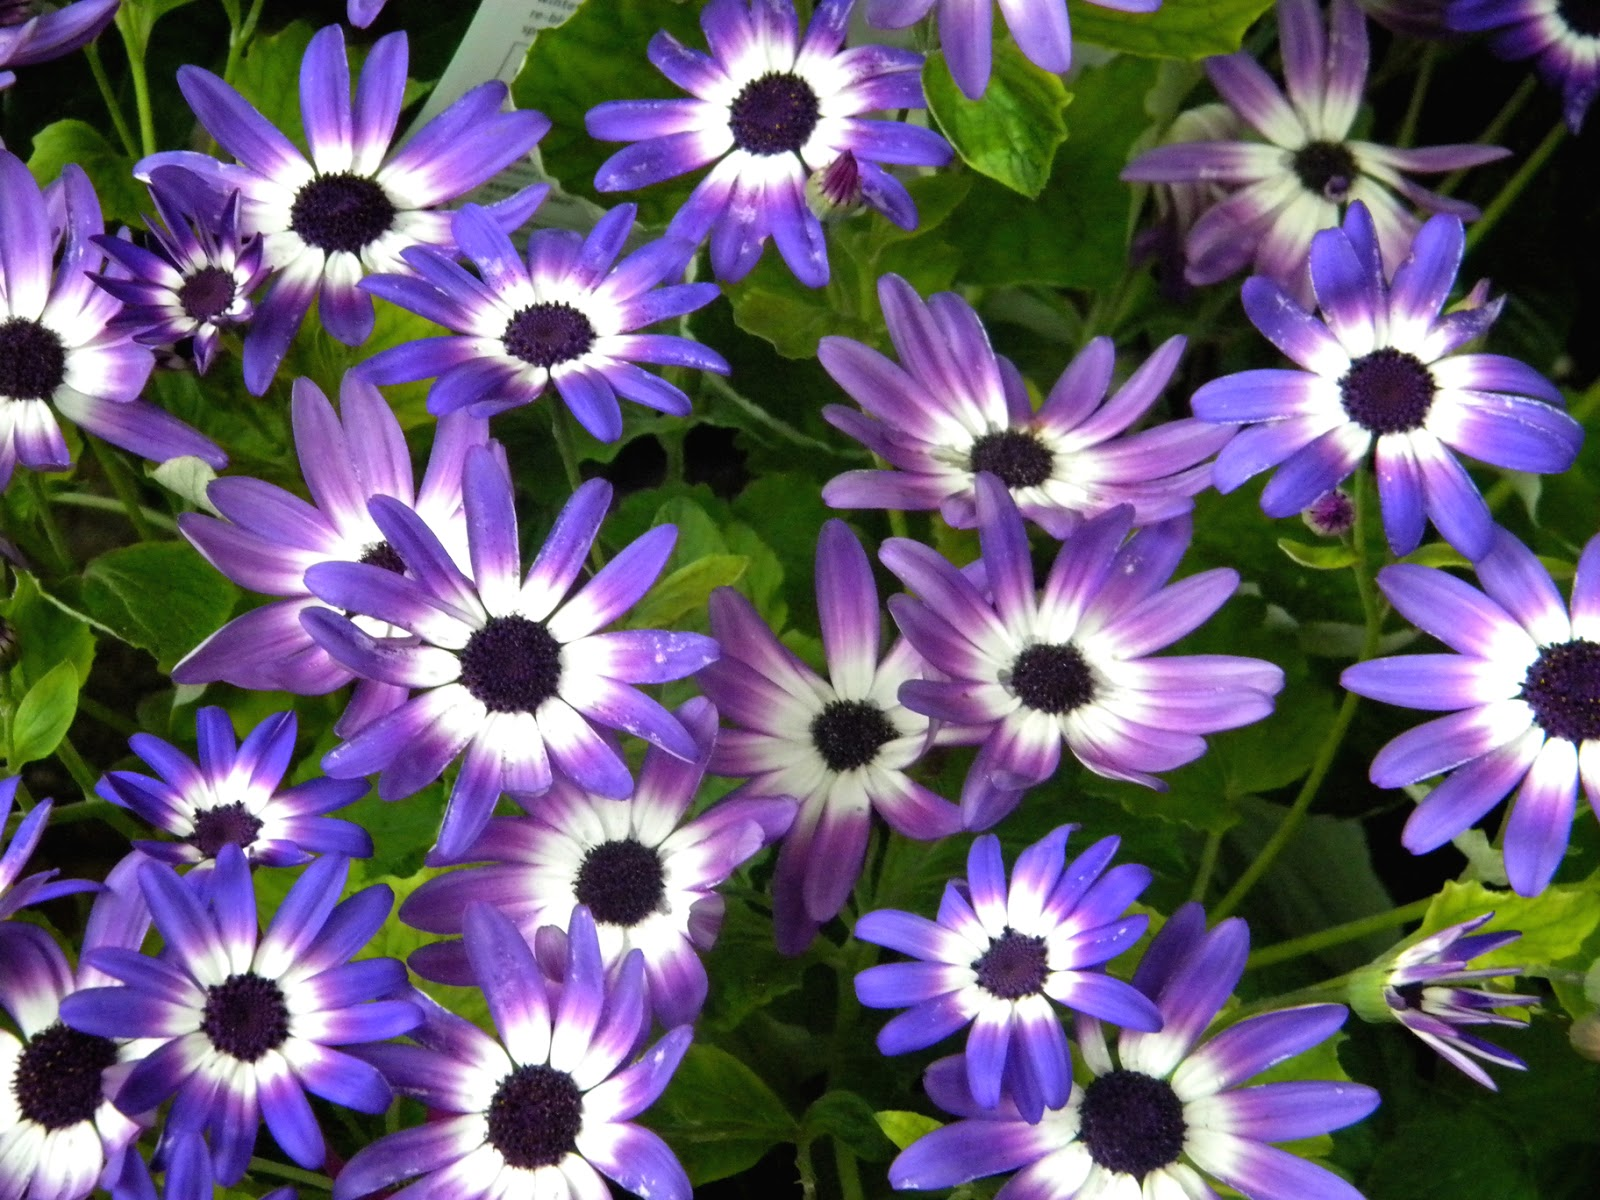 Blue Daisy Violet Daisies spring flowers